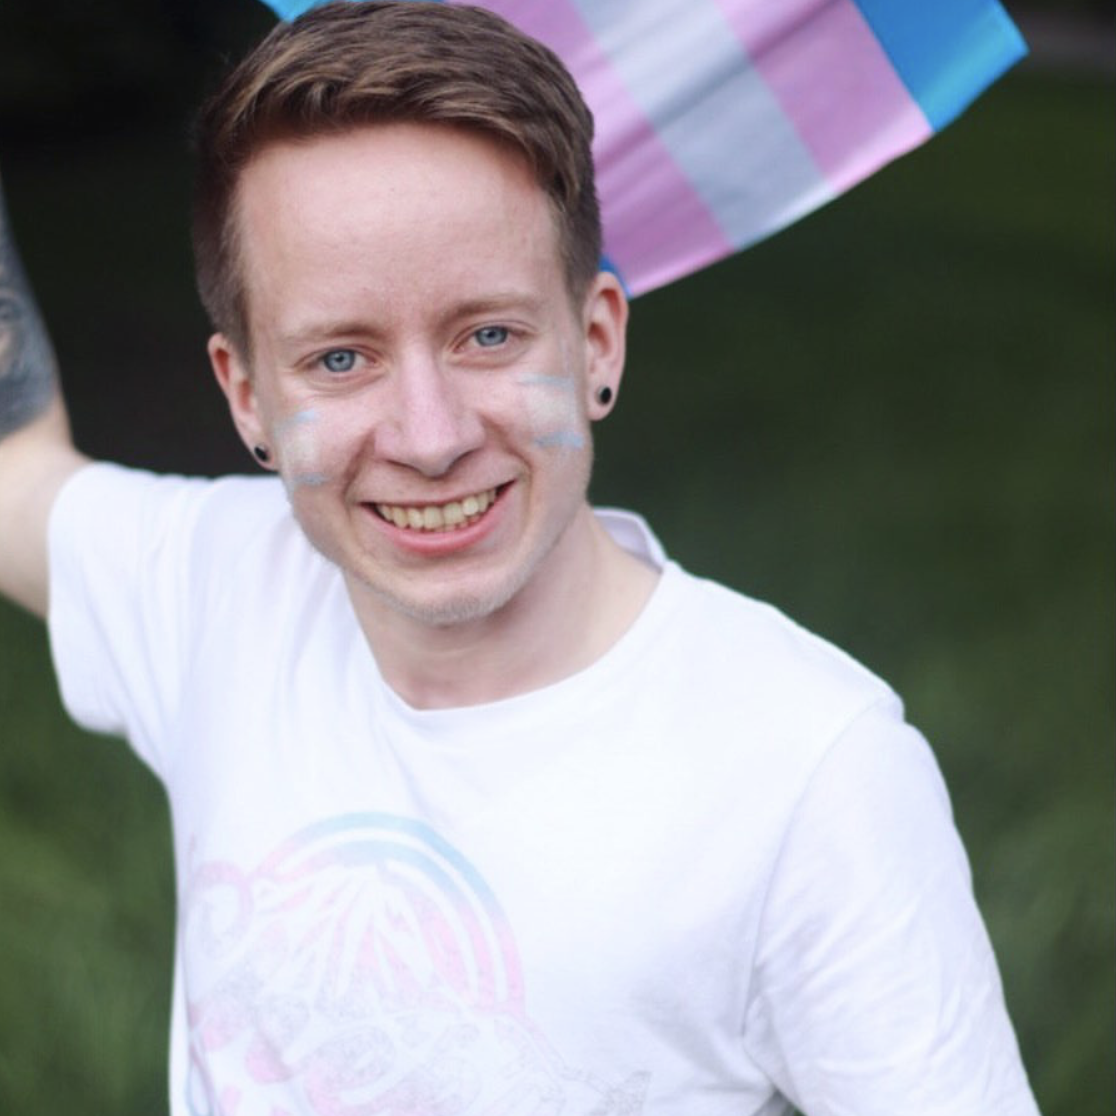 Jonas (he/him) - Making our Limited Edition Trans Pride Cheers Queers Tee look damn fine.